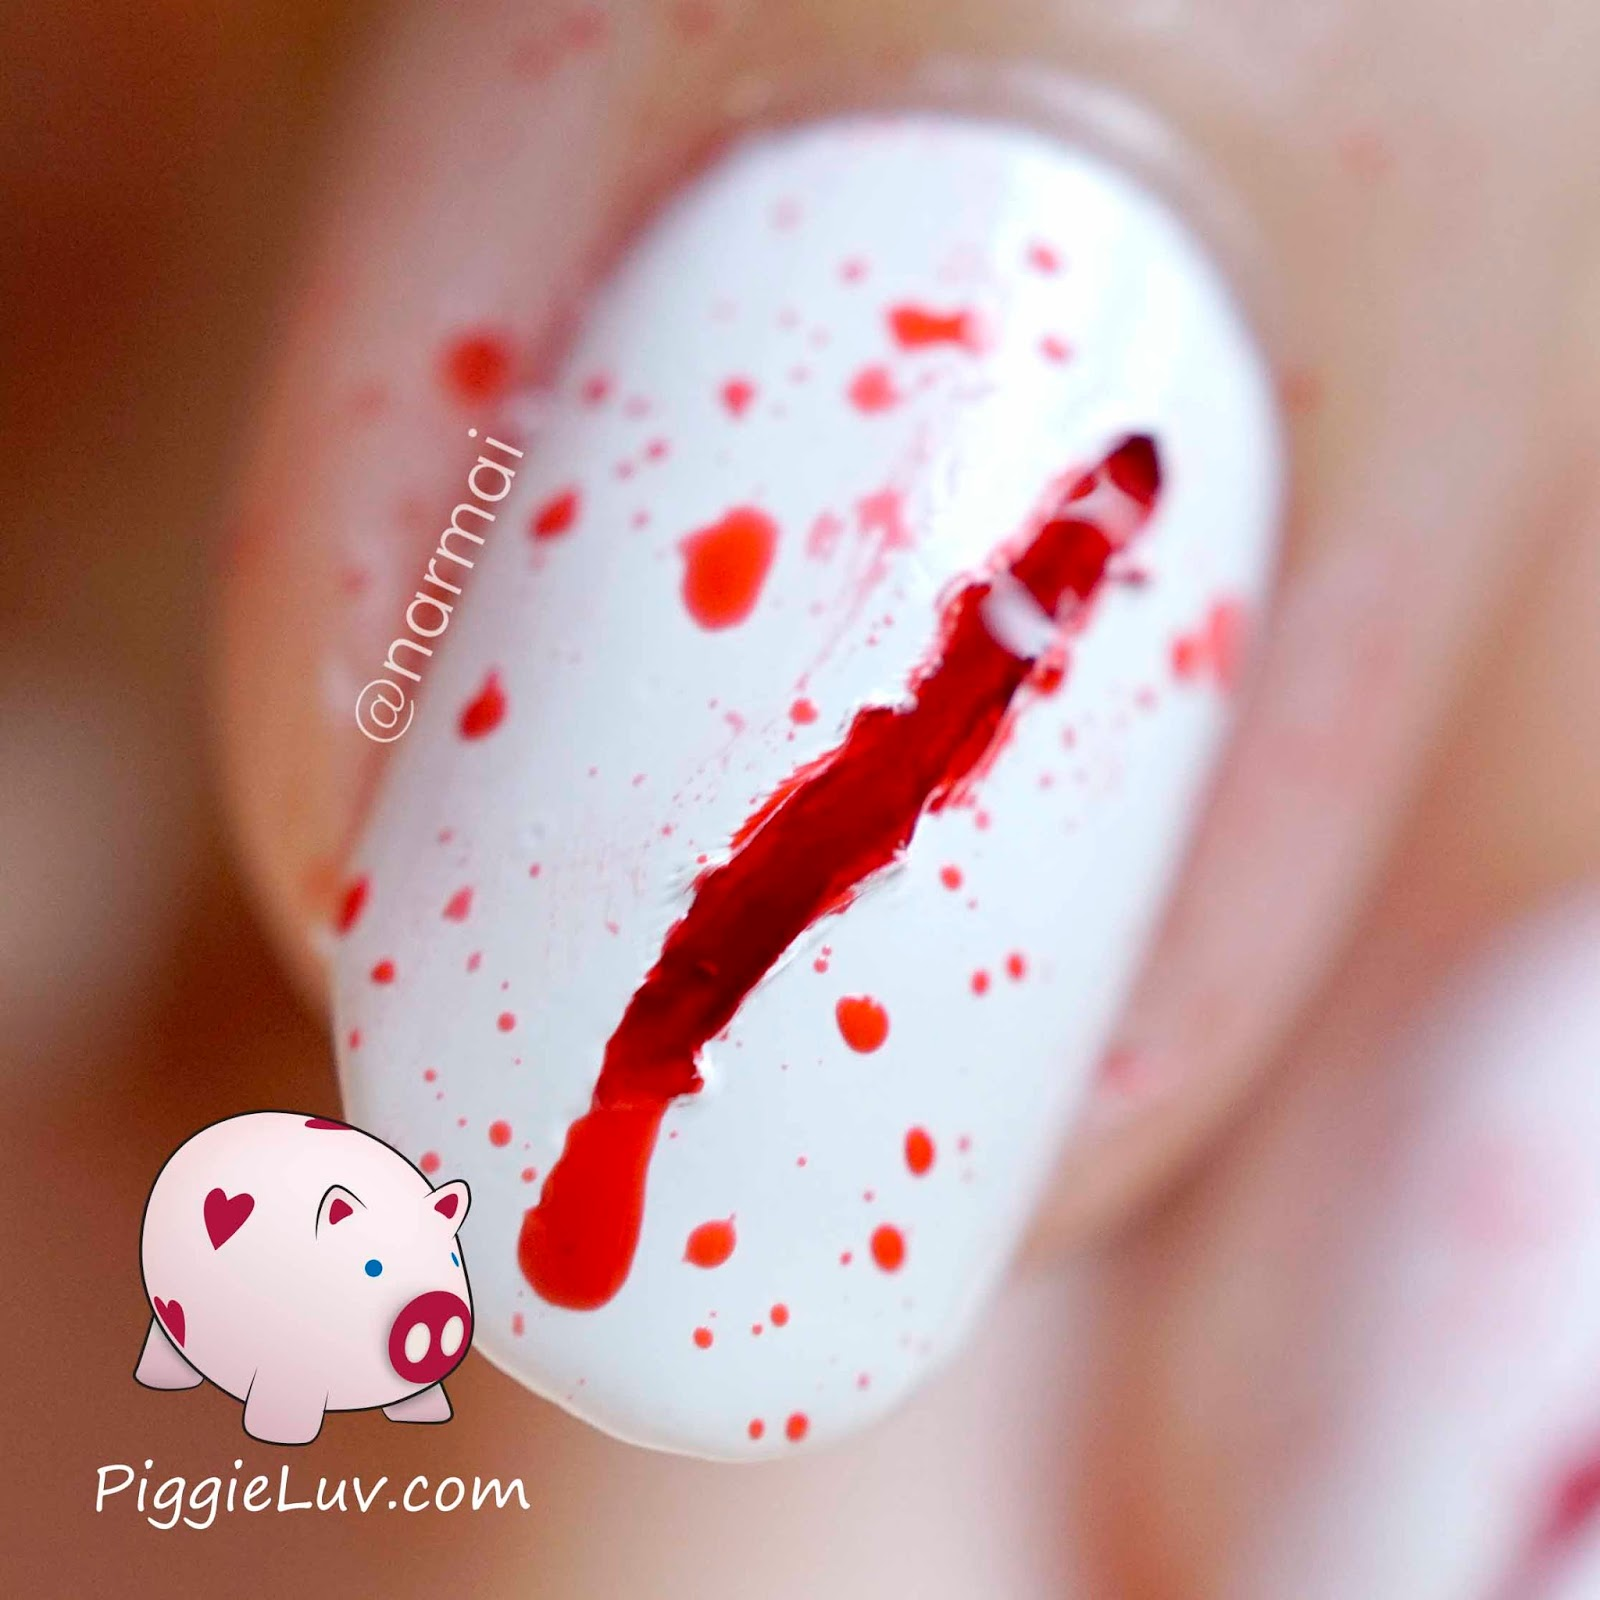 Piggieluv bloody scratches nail art for halloween bloody scratches nail art for halloween solutioingenieria Image collections